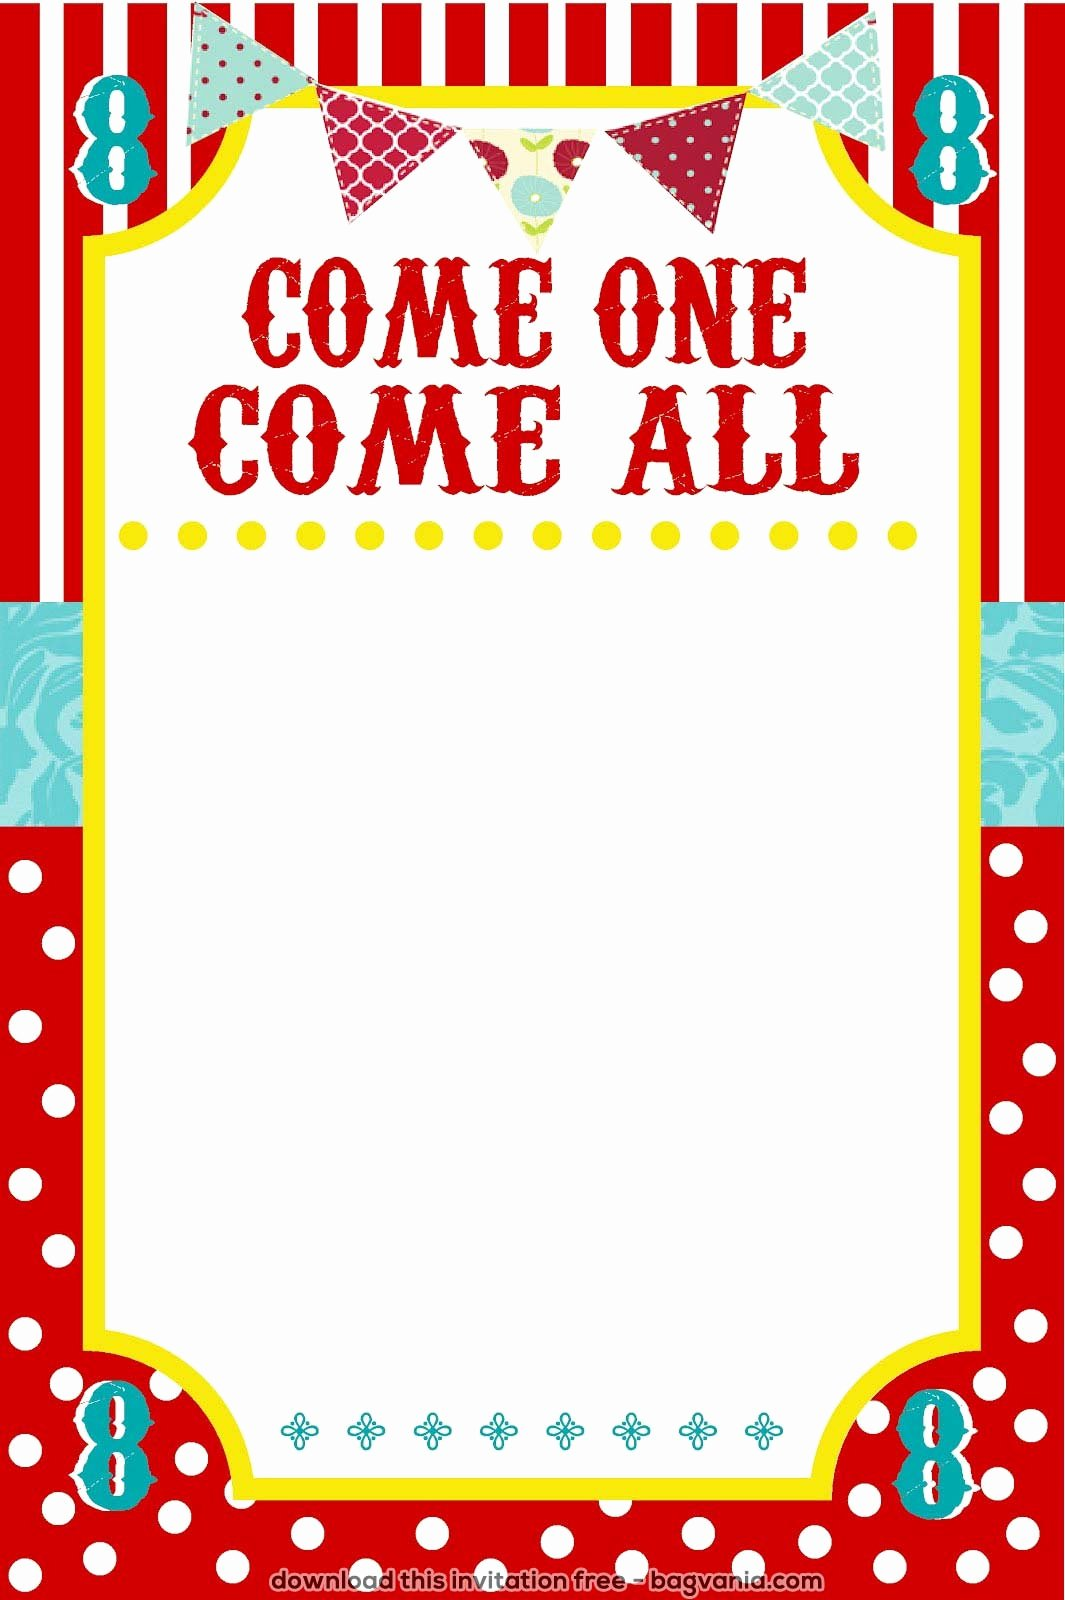 Carnival Invitation Templates Best Of Free Carnival Birthday Invitations – Free Printable